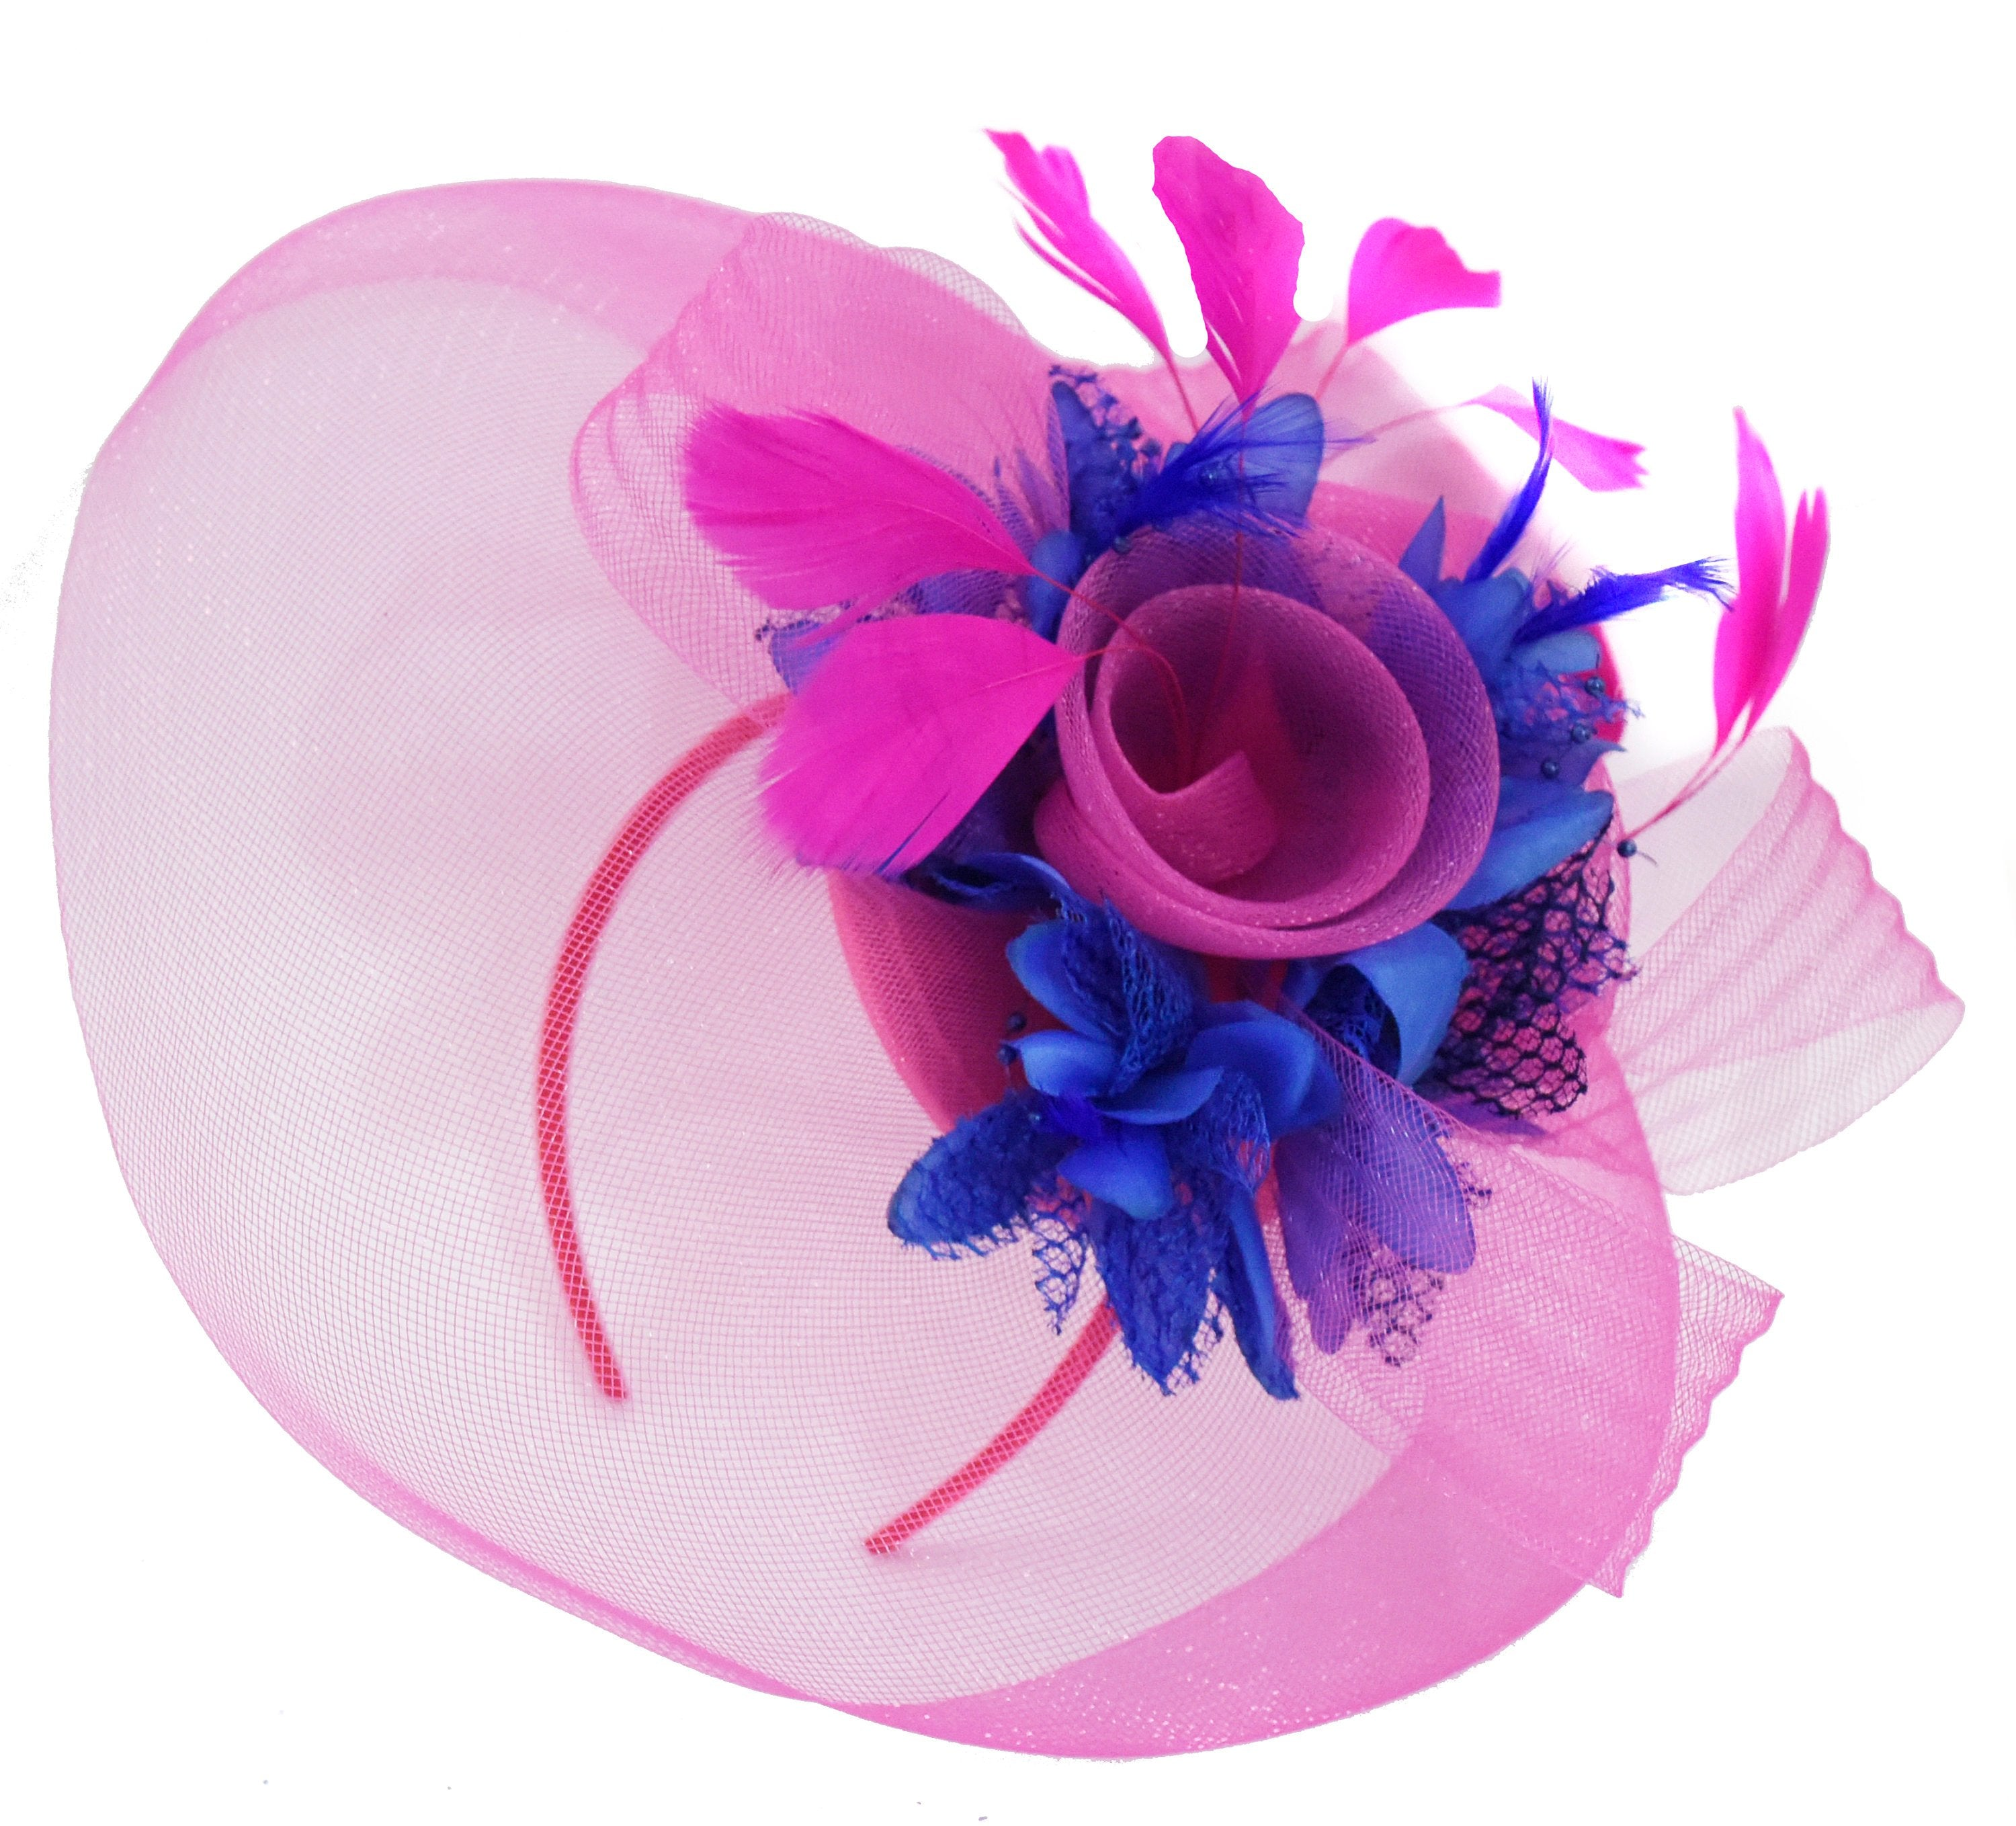 Caprilite Fuchsia Hot Pink and Royal Blue Fascinator Hat Veil Net Hair Clip Ascot Derby Races Wedding Headband Feather Flower